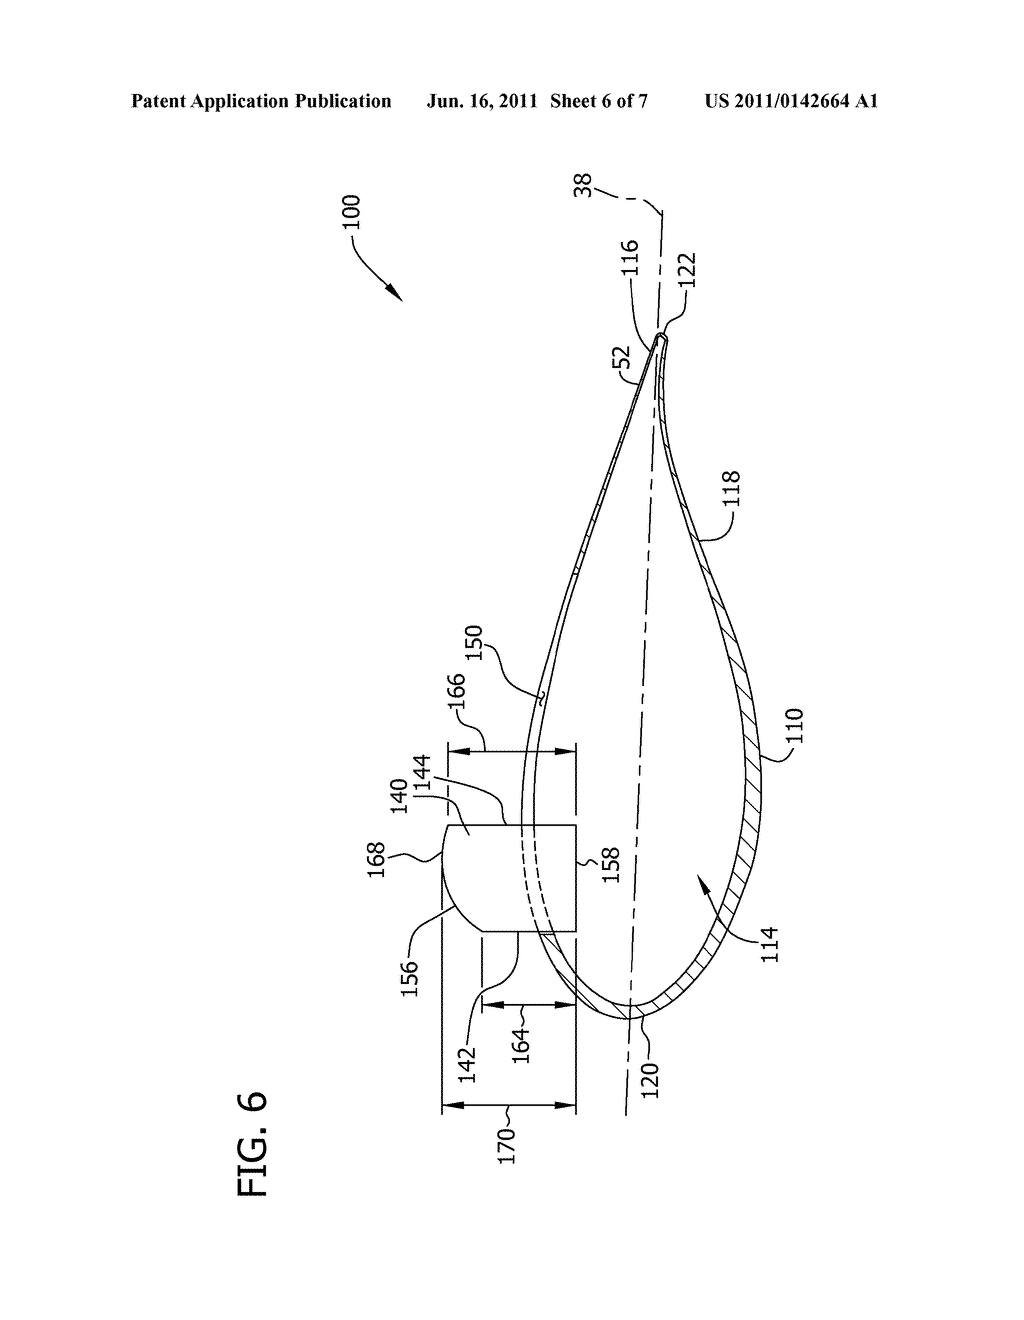 VORTEX GENERATOR ASSEMBLY FOR USE WITH A WIND TURBINE ROTOR